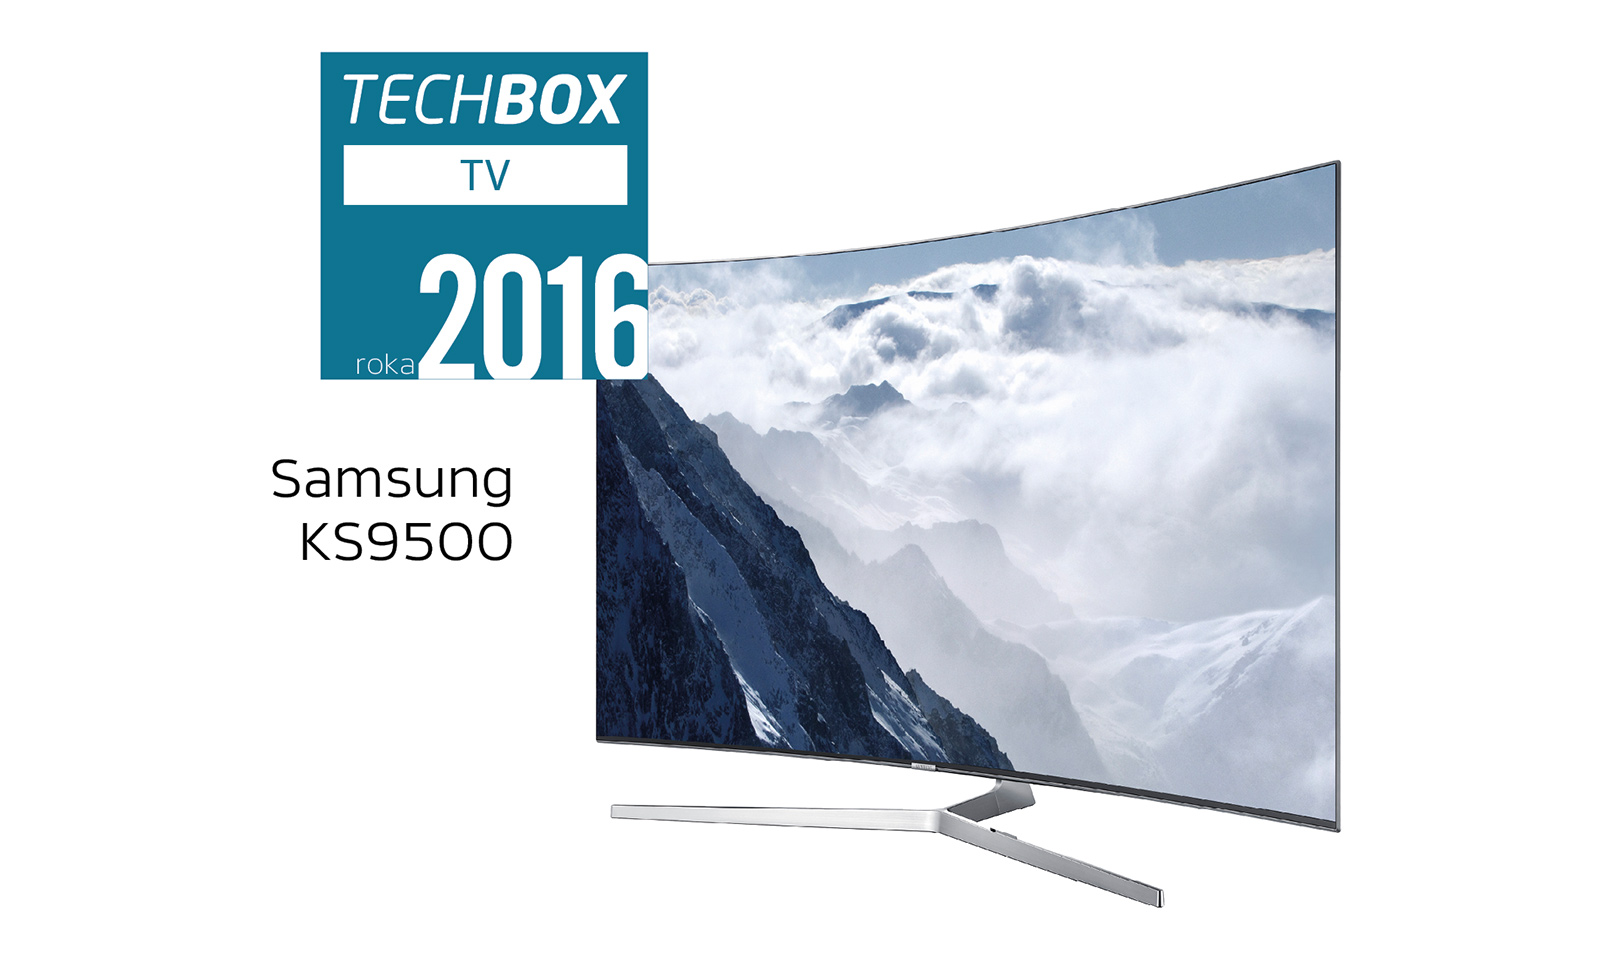 TECHBOX TV roka 2016